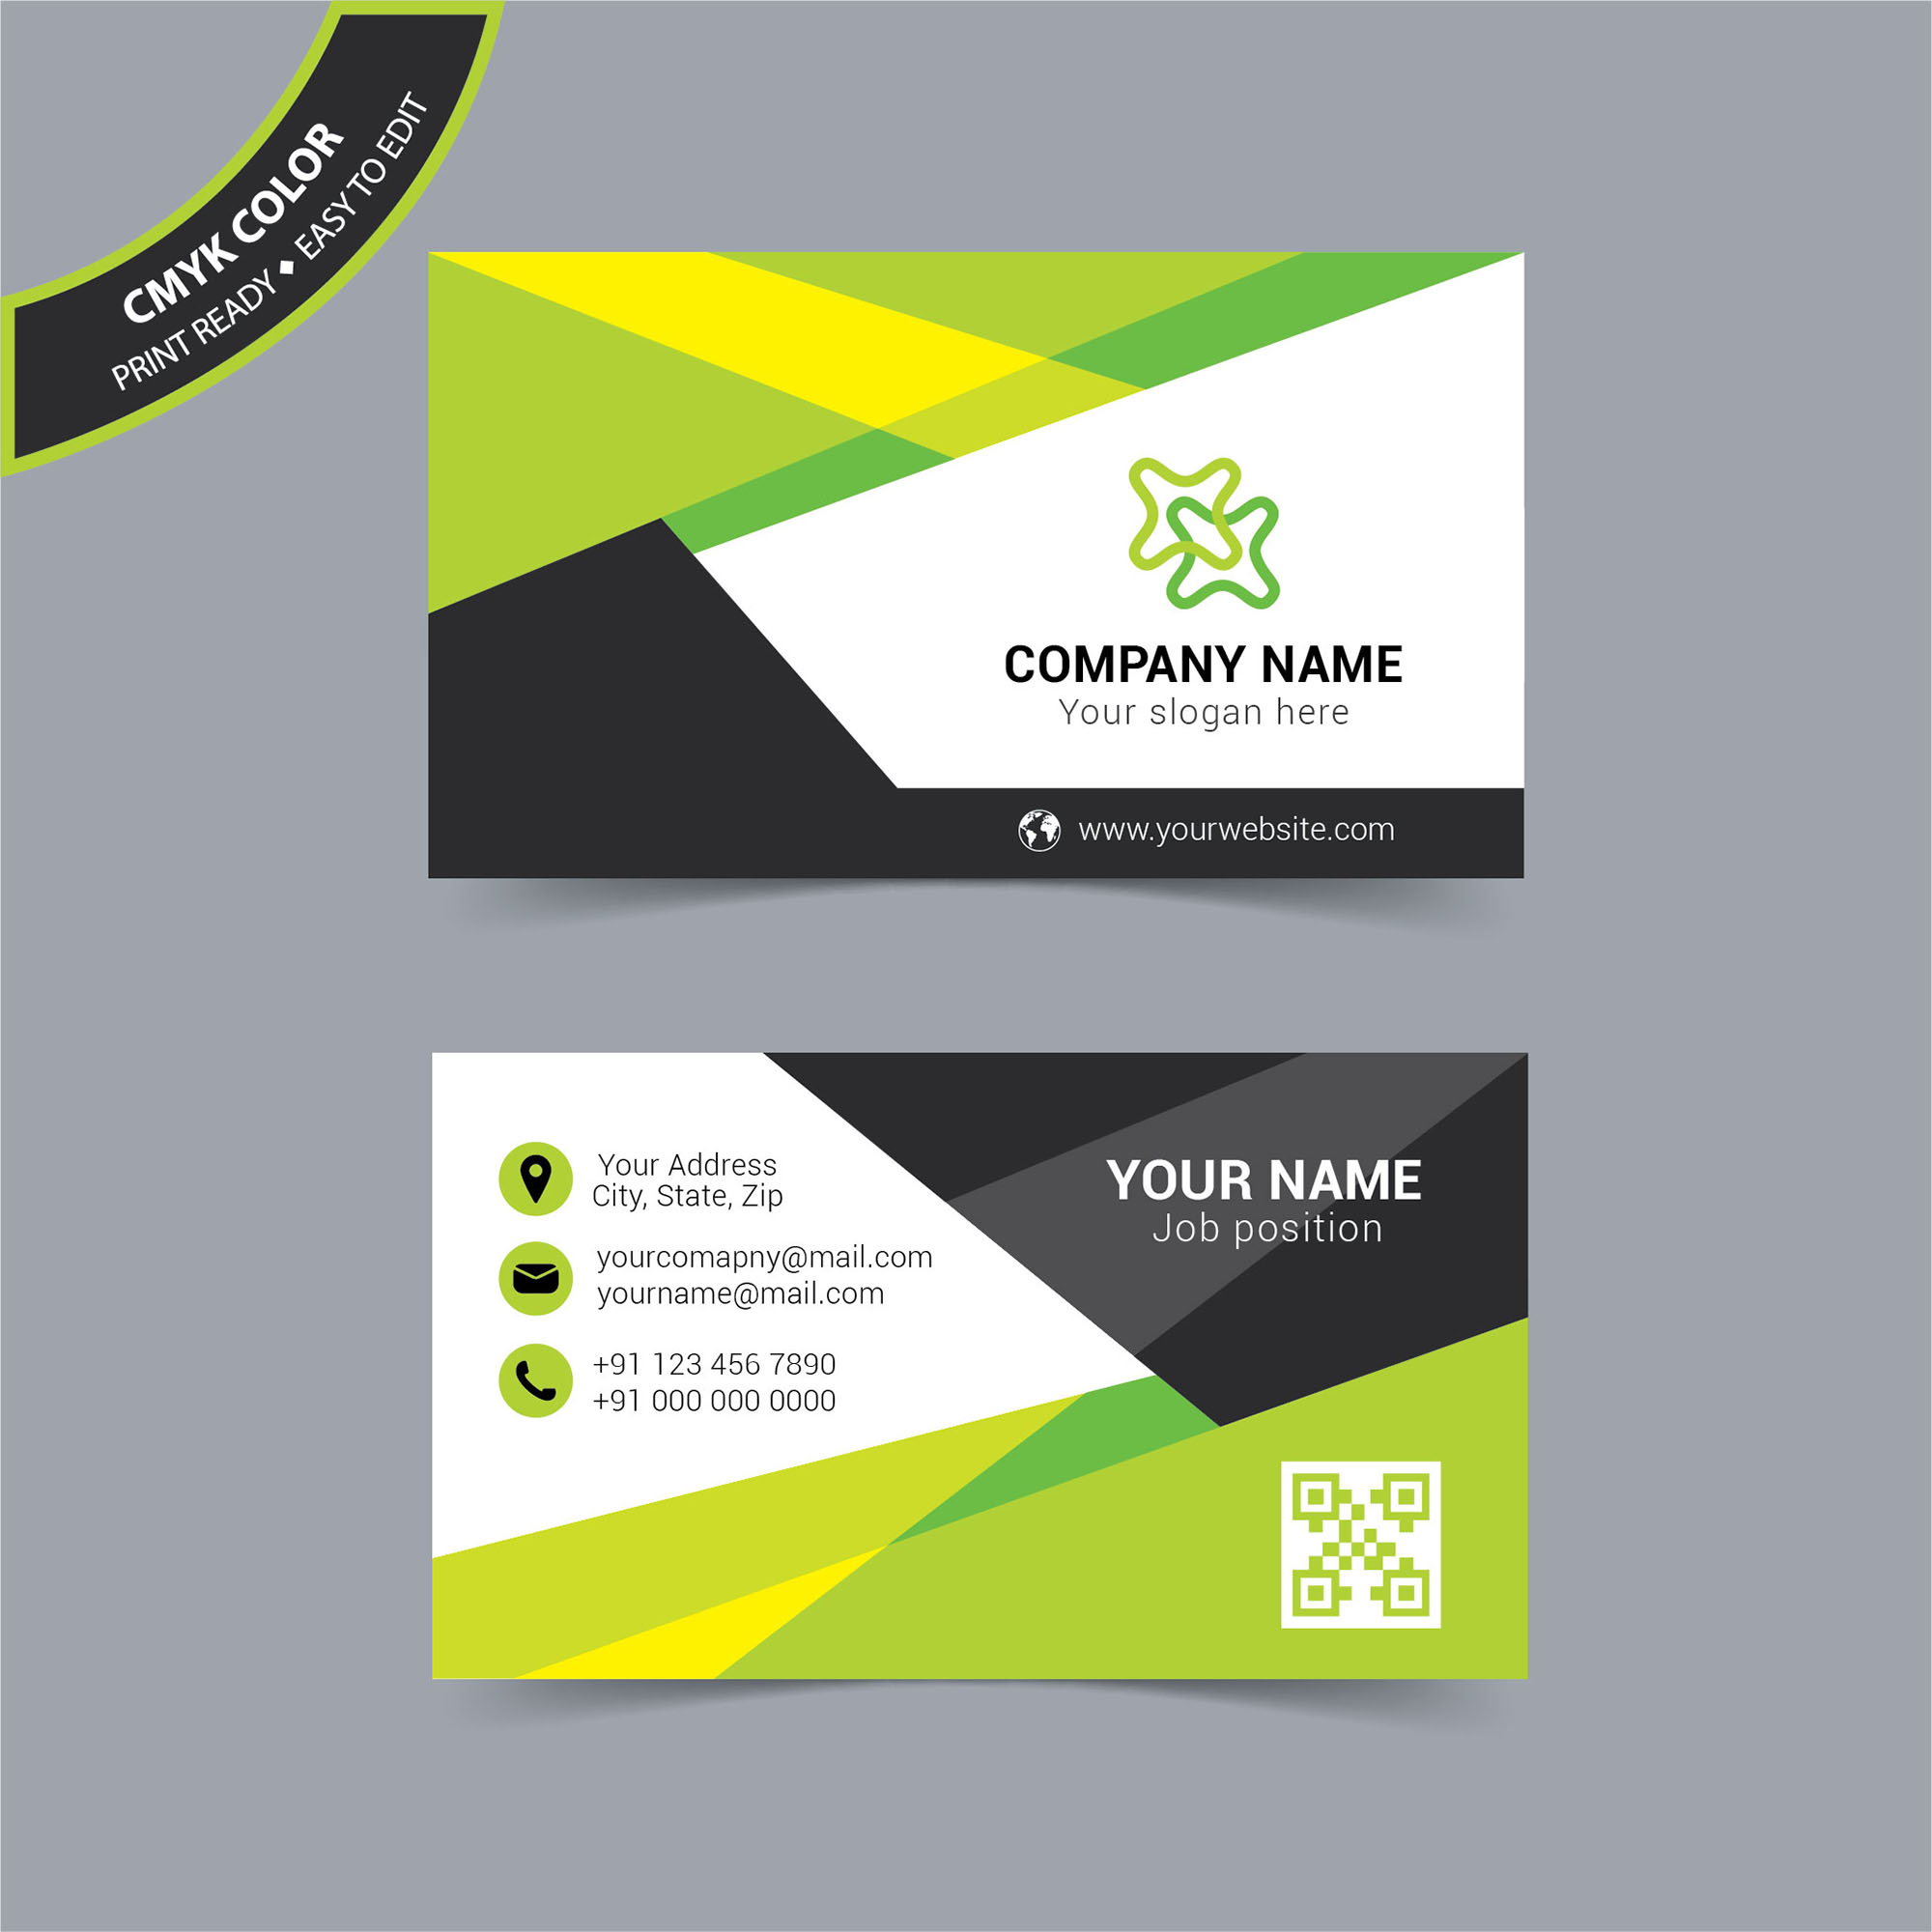 Modern colorful business card design free download wisxi business card business cards business card design business card template design templates wajeb Gallery